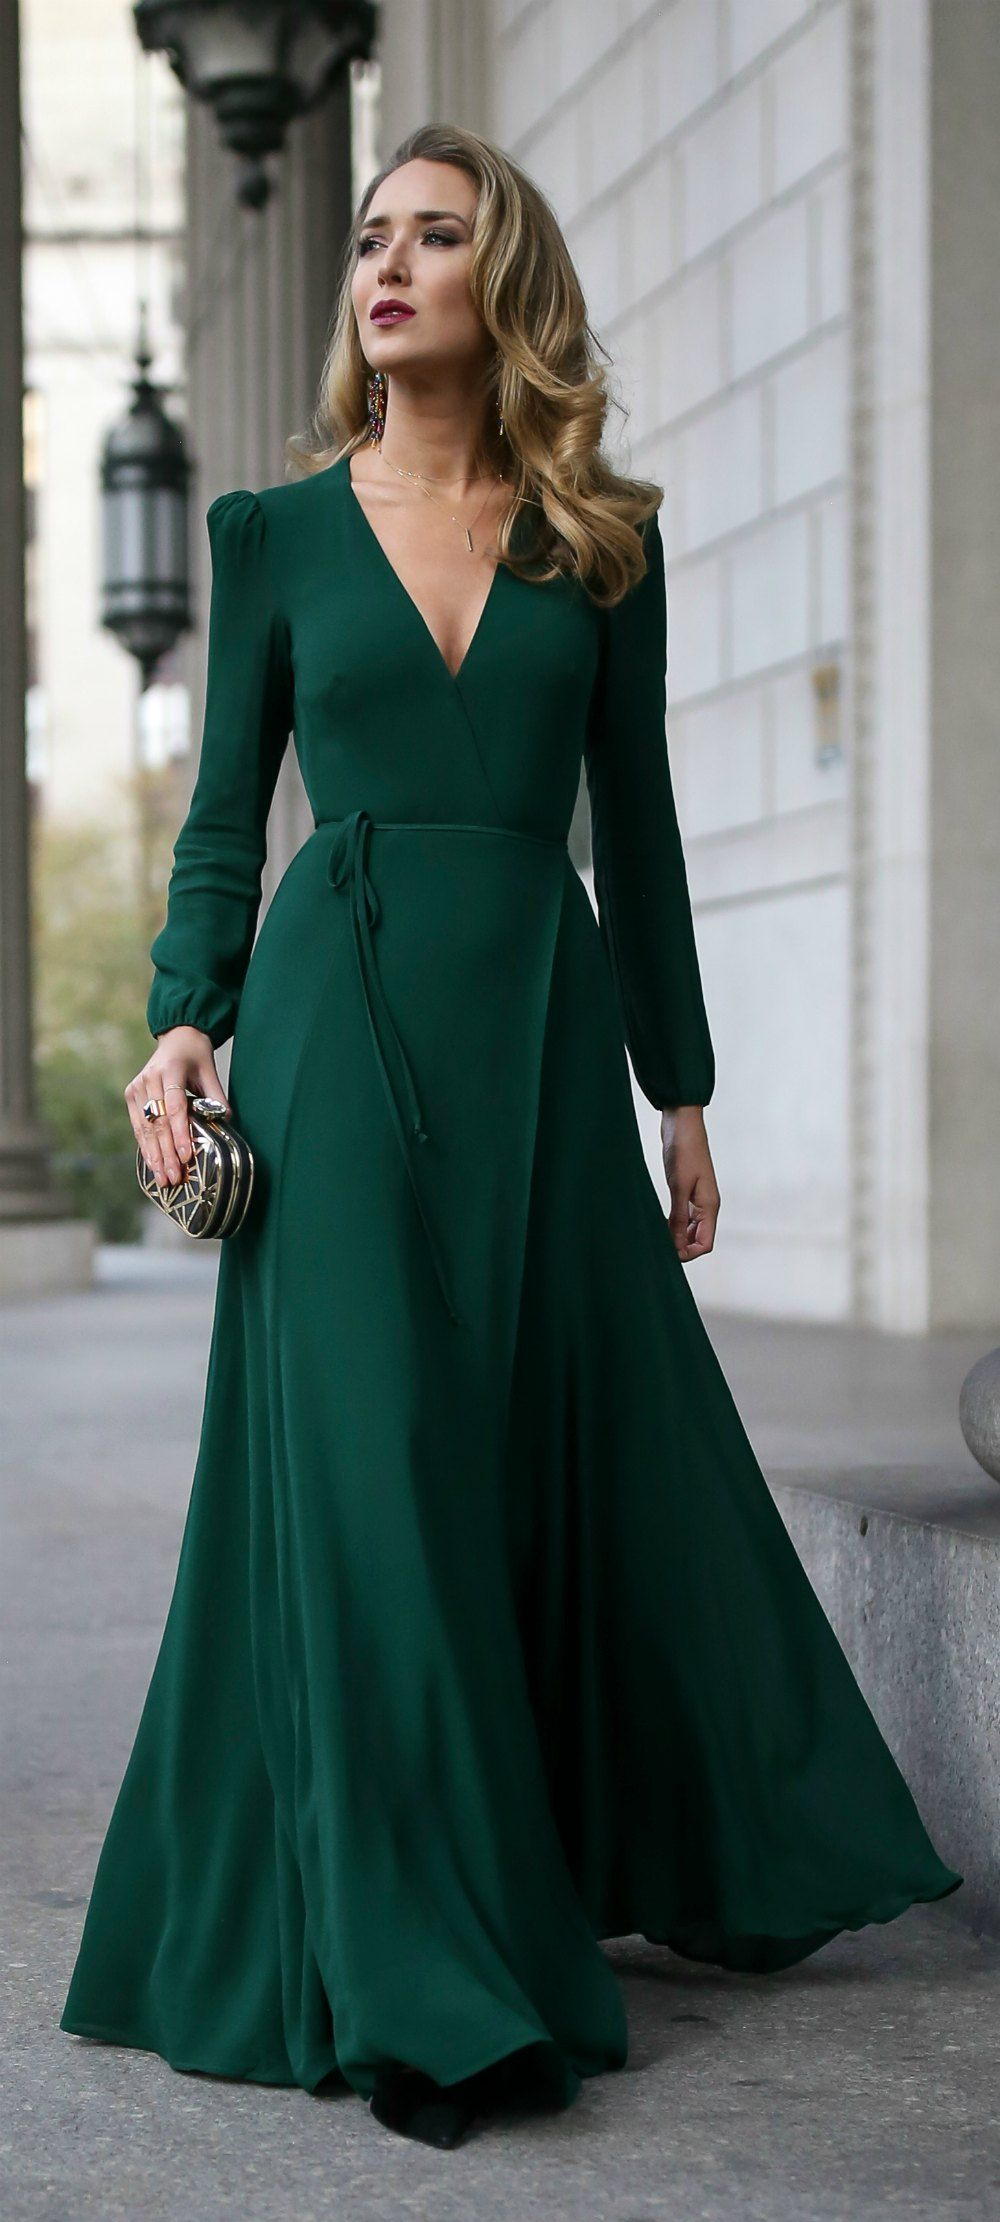 Click for outfit details emerald green longsleeve floorlength